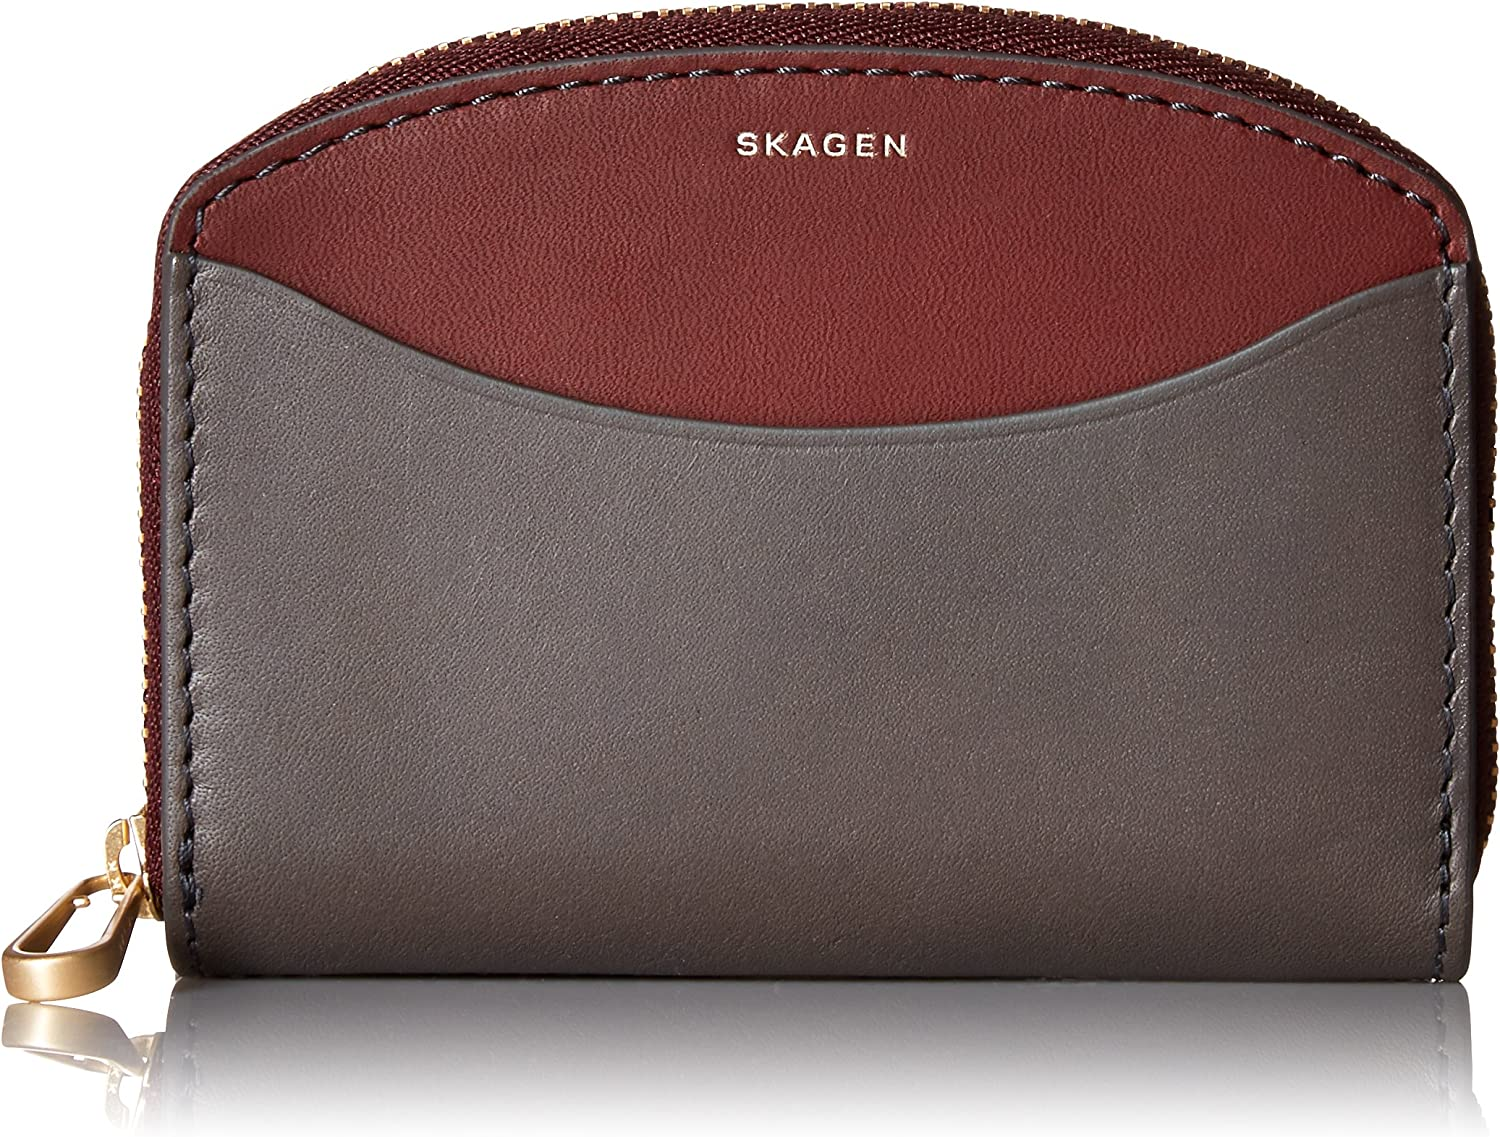 Skagen Women's SWS0249044 Coin Purse